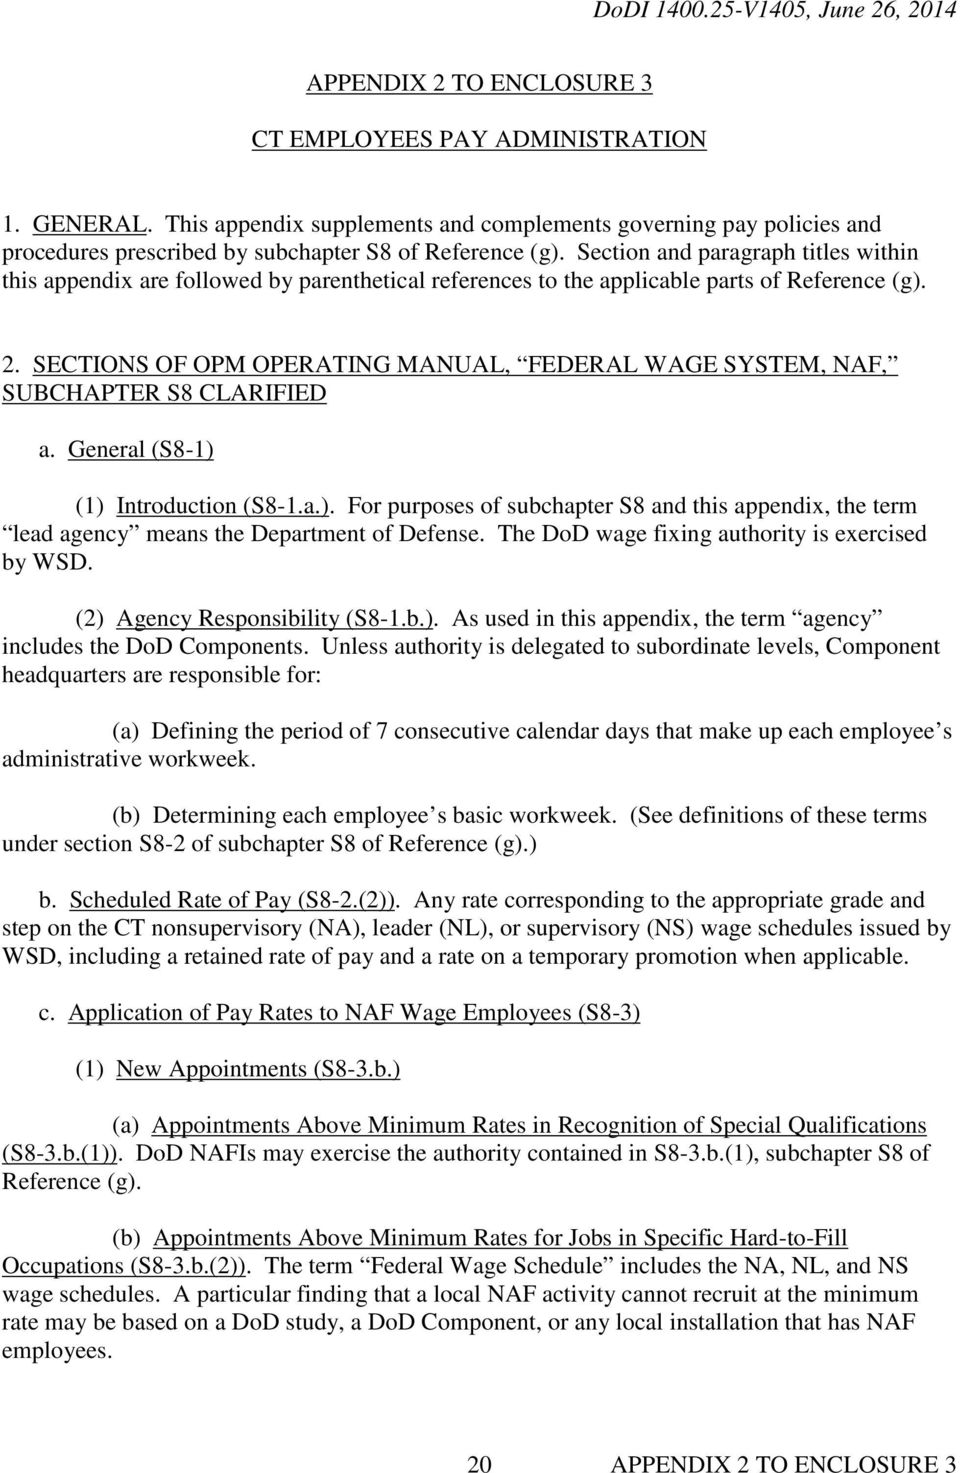 department of defense instruction pdf rh docplayer net  opm operating manual federal wage system appendix j